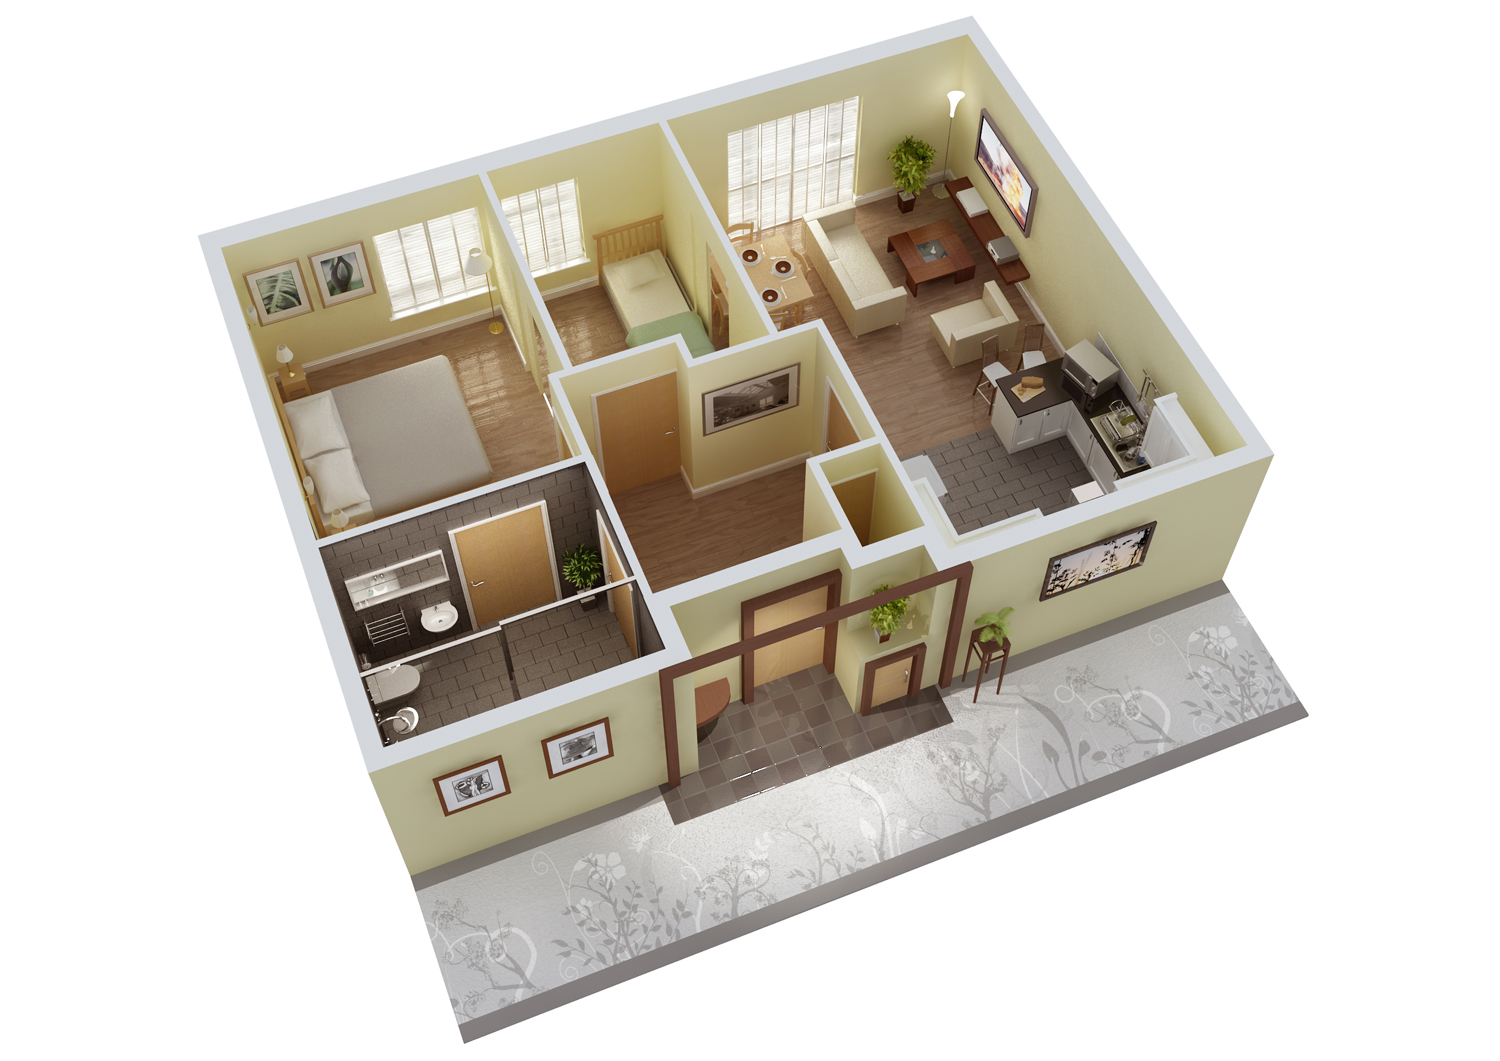 Mathematics resources project 3d floor plan Simple house floor plans